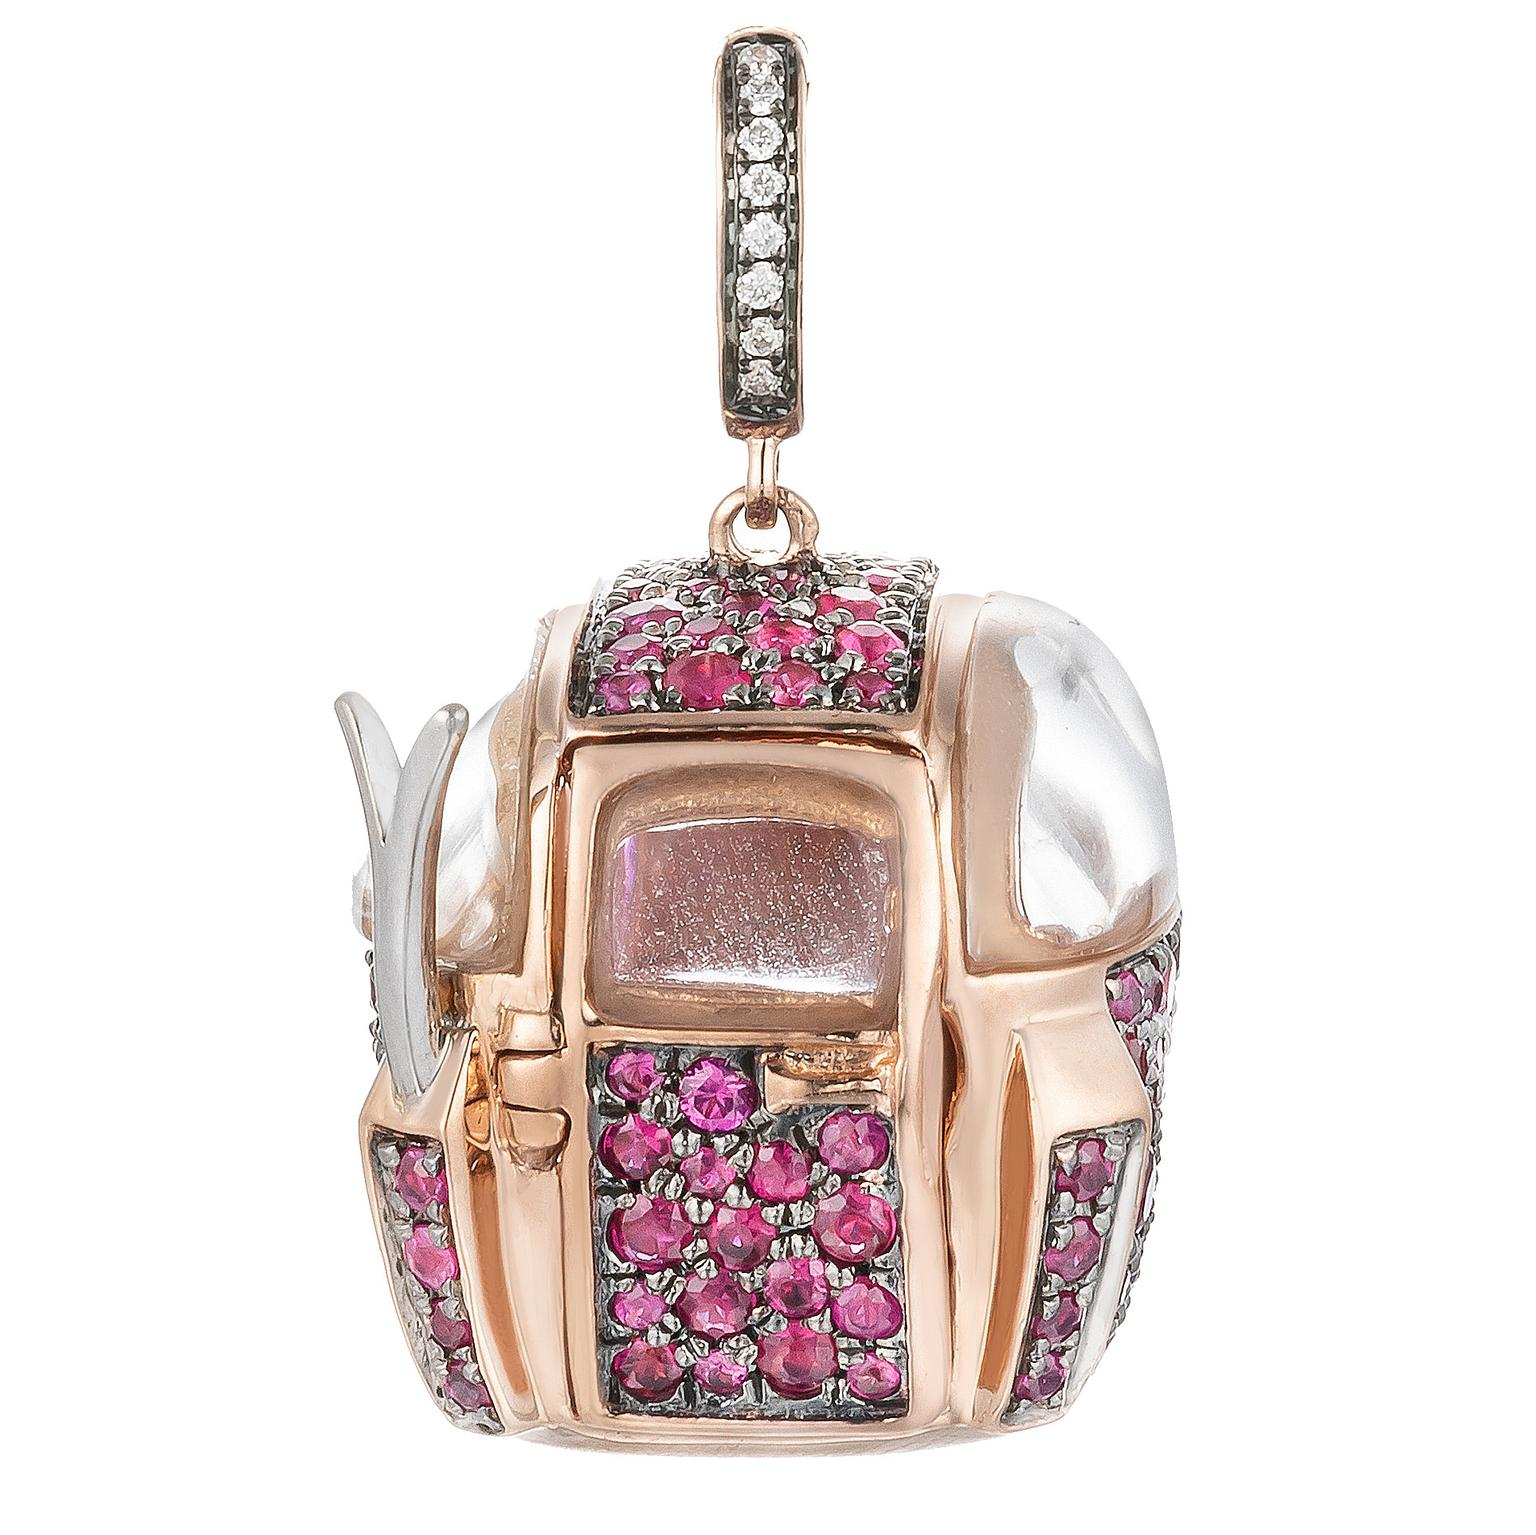 Annoushka My Life in 7 Charms, Cable Car charm